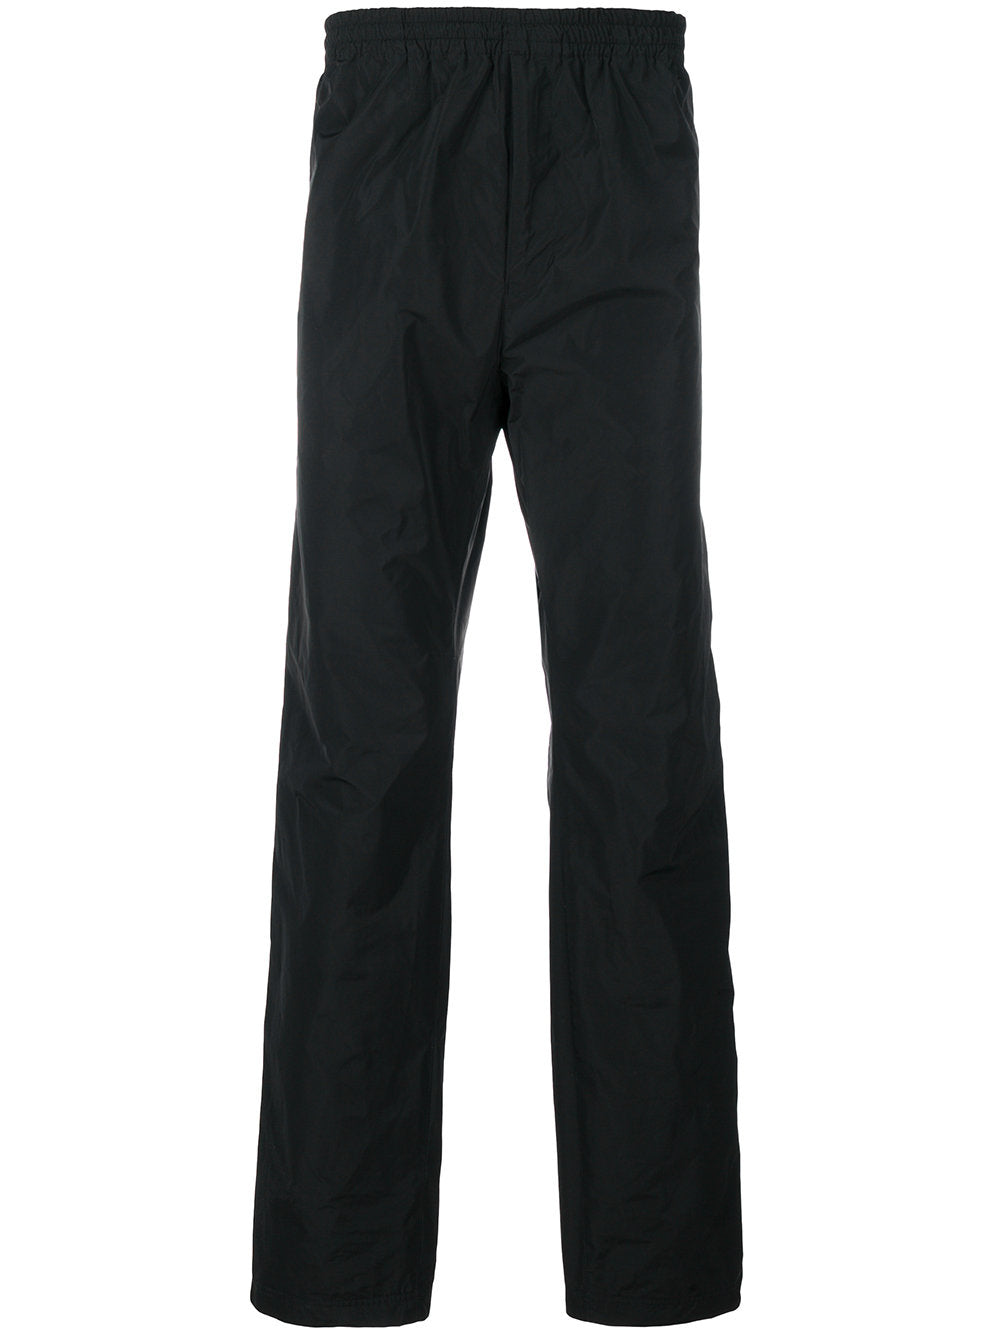 WHITE MOUNTAINEERING - Drawstring Shirring Pants